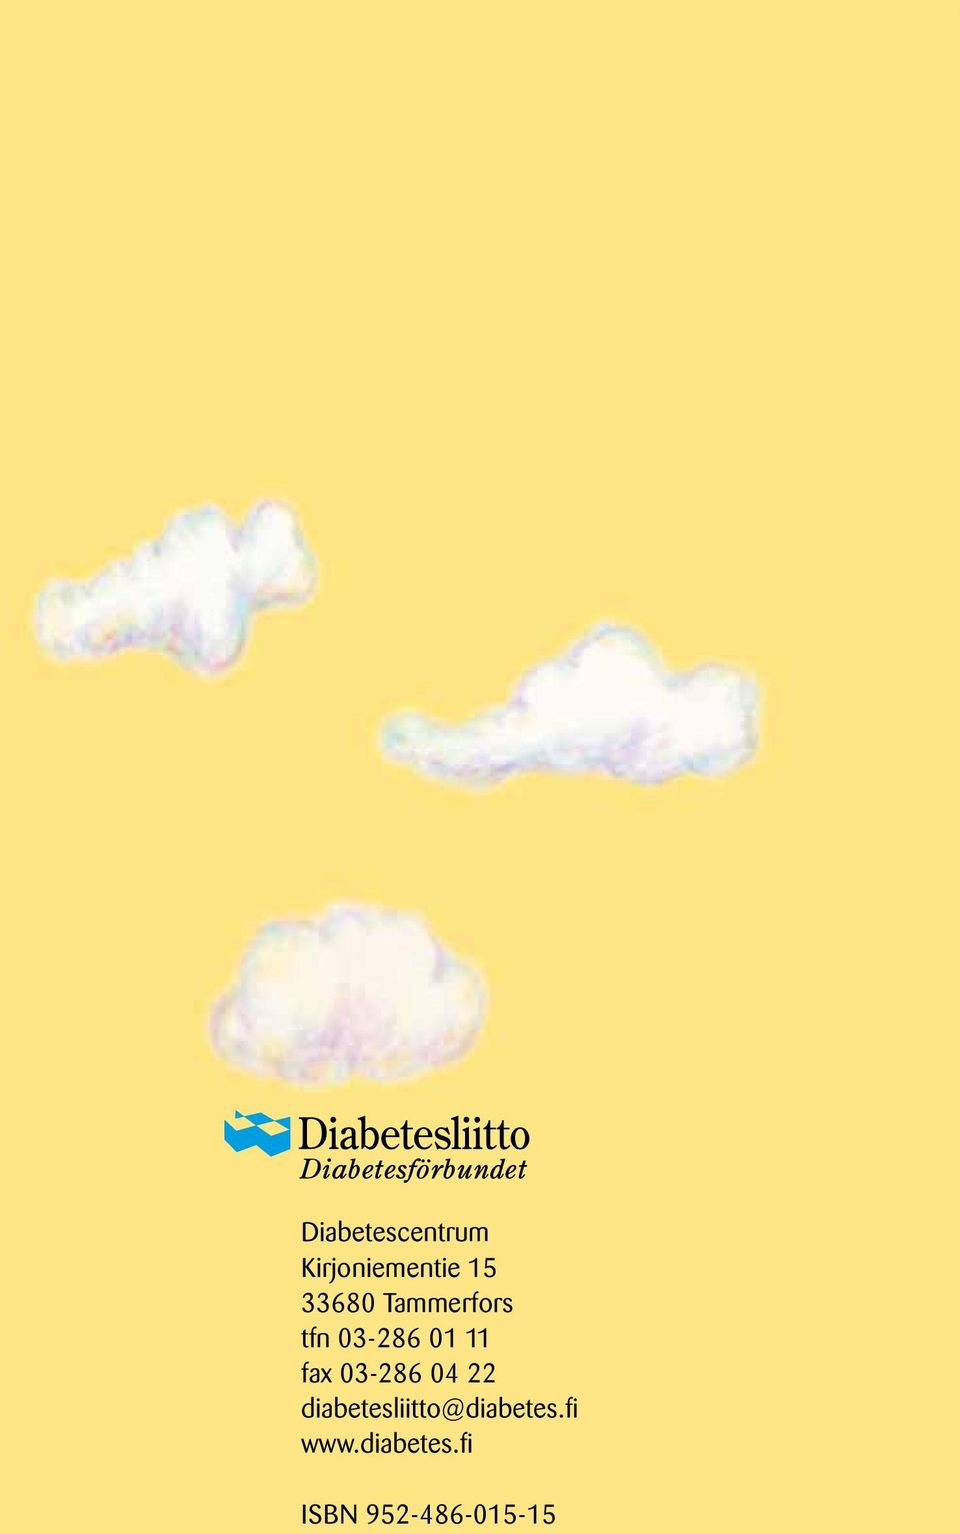 03-286 04 22 diabetesliitto@diabetes.